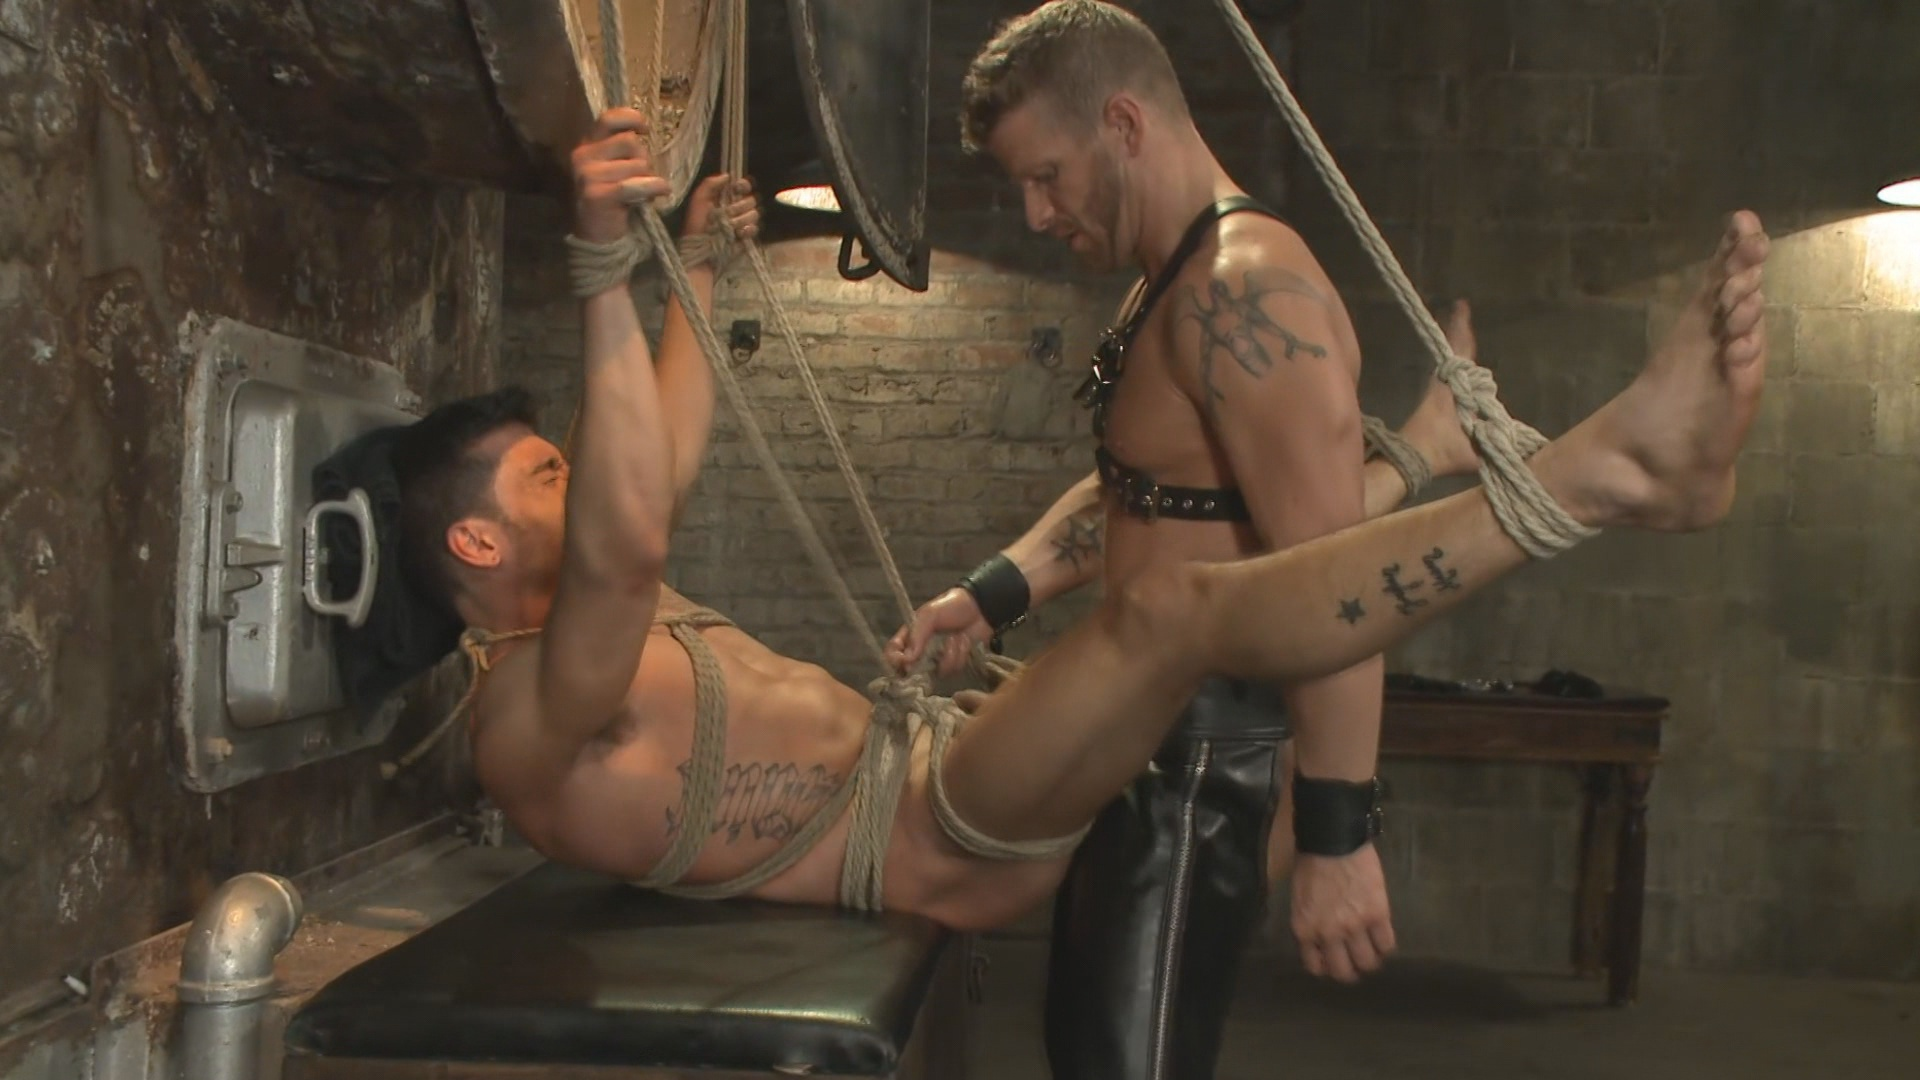 Bound Gods: Straight Stud Taken From His Girlfriend Xvideo gay